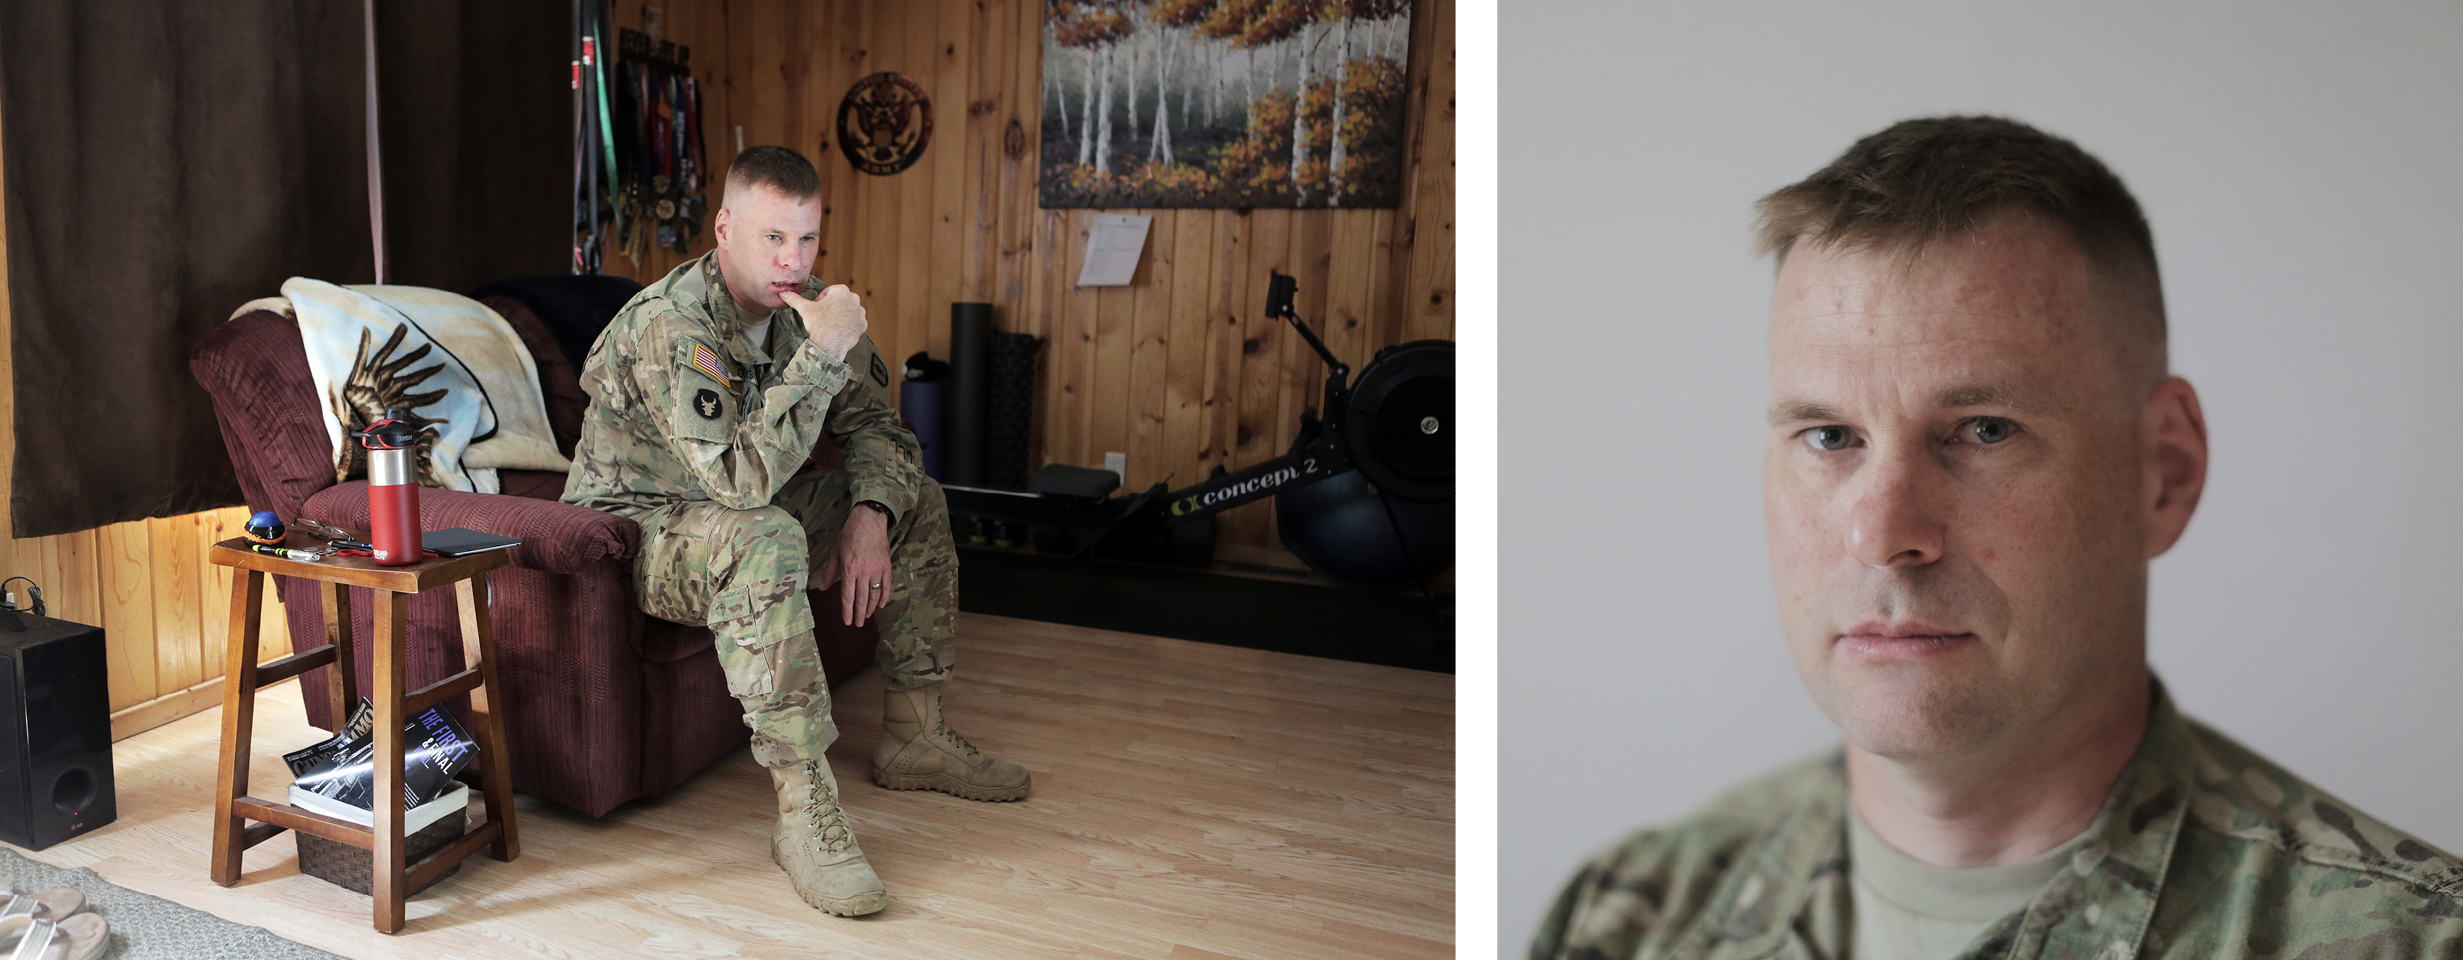 Sgt. 1st Class Joshua Guyse in his living room in Swanville, Minnesota.